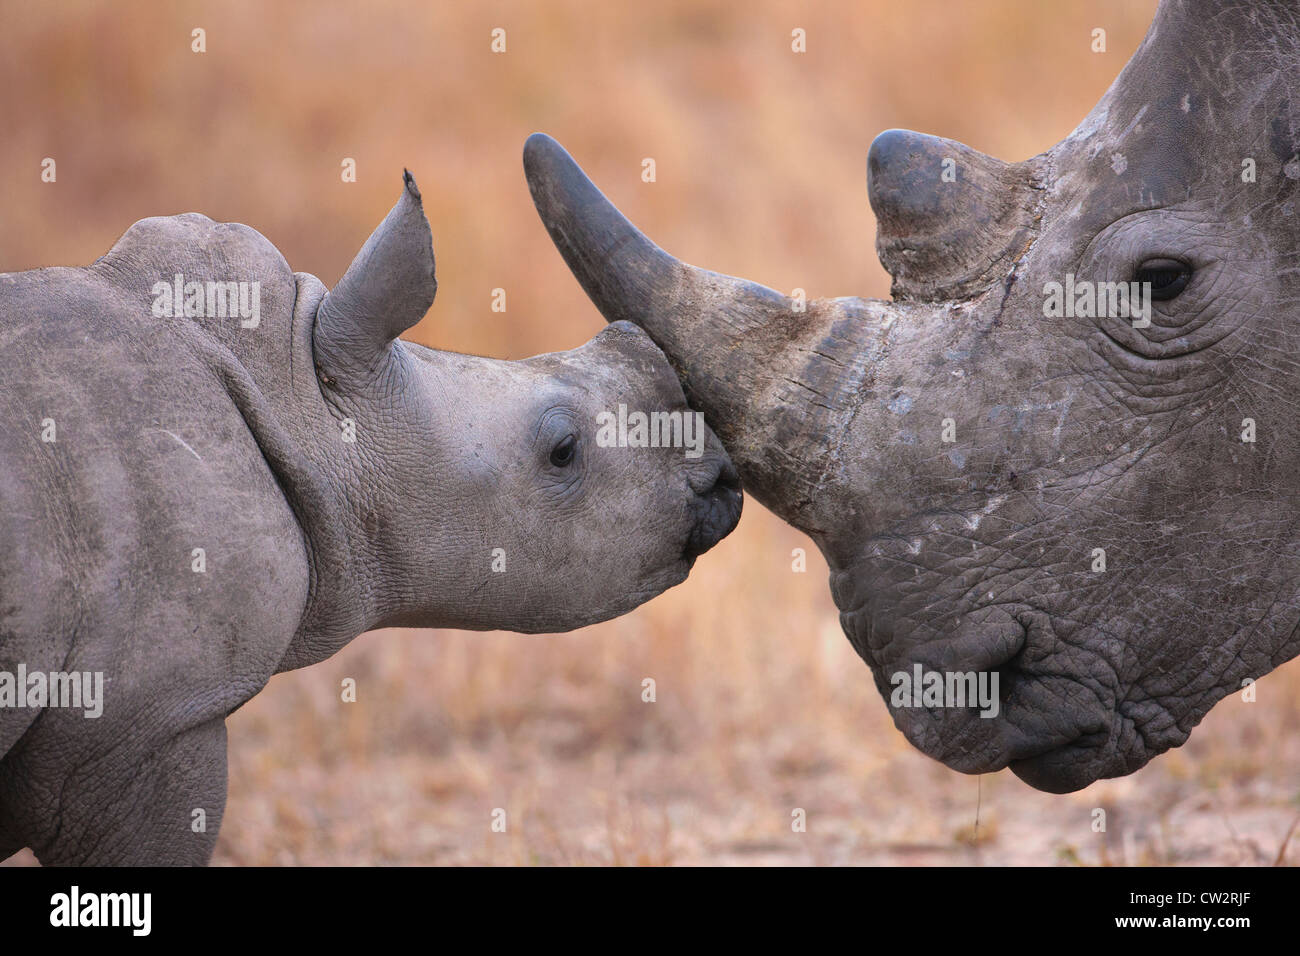 Baby white rhinoceros nuzzling its mother - Stock Image